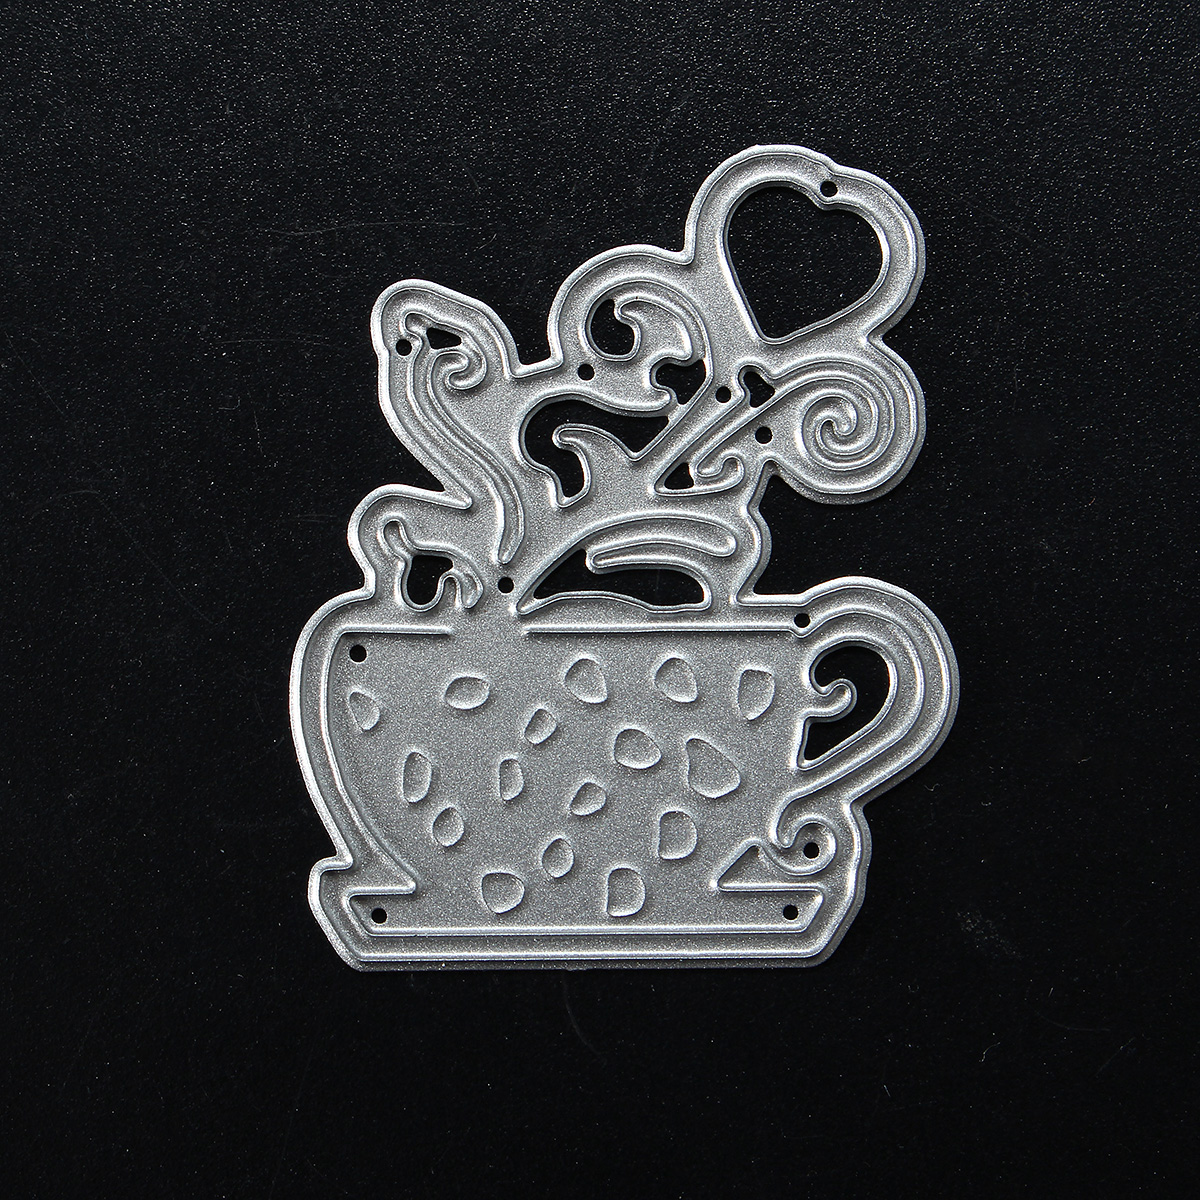 DIY Decor Coffee Love Heart Metal Cutting Dies Stencils Scrapbook Photo Album Paper Card Craft